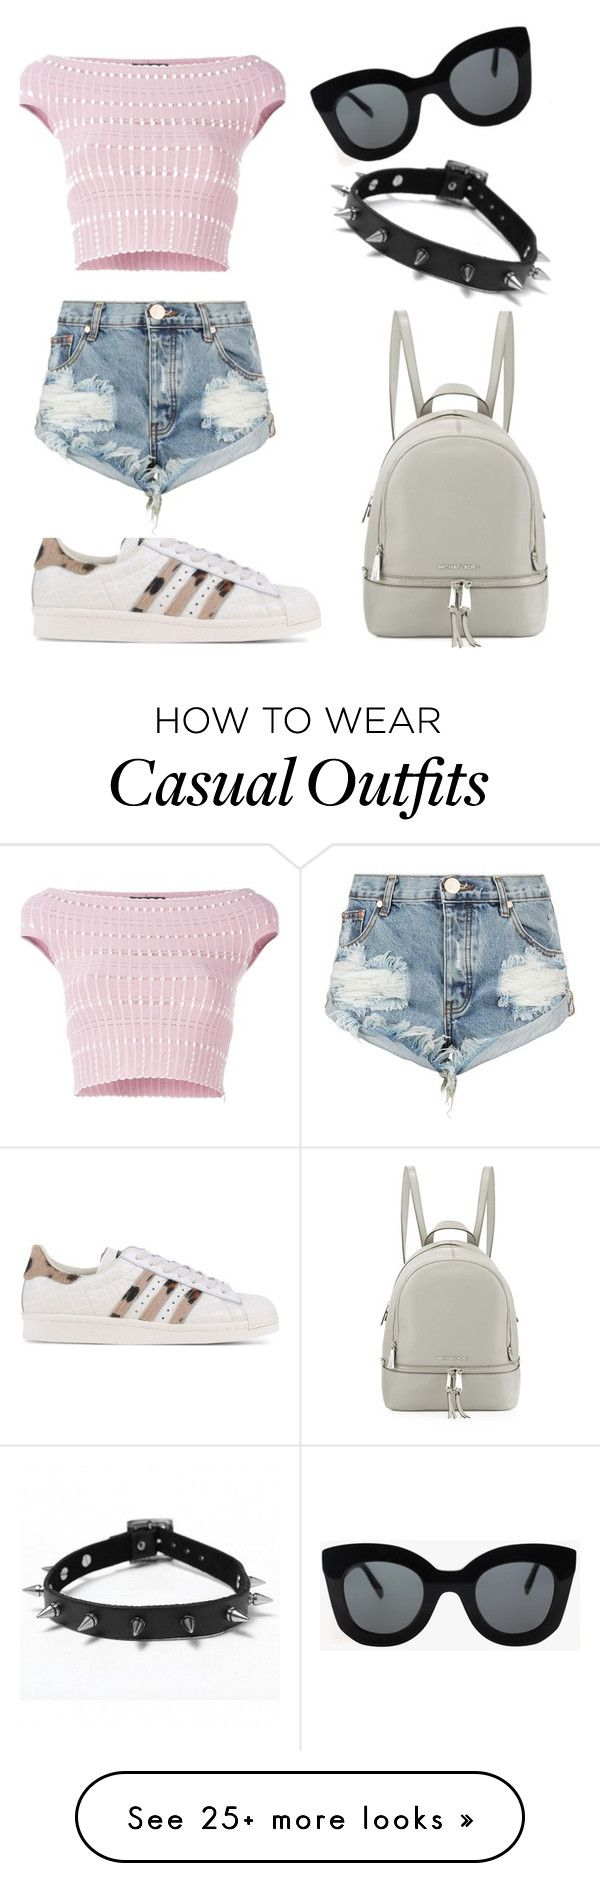 """Casual"" by alex-uh on Polyvore featuring Alexander McQueen, adidas Originals, One Teaspoon, CÉLINE and MICHAEL Michael Kors"